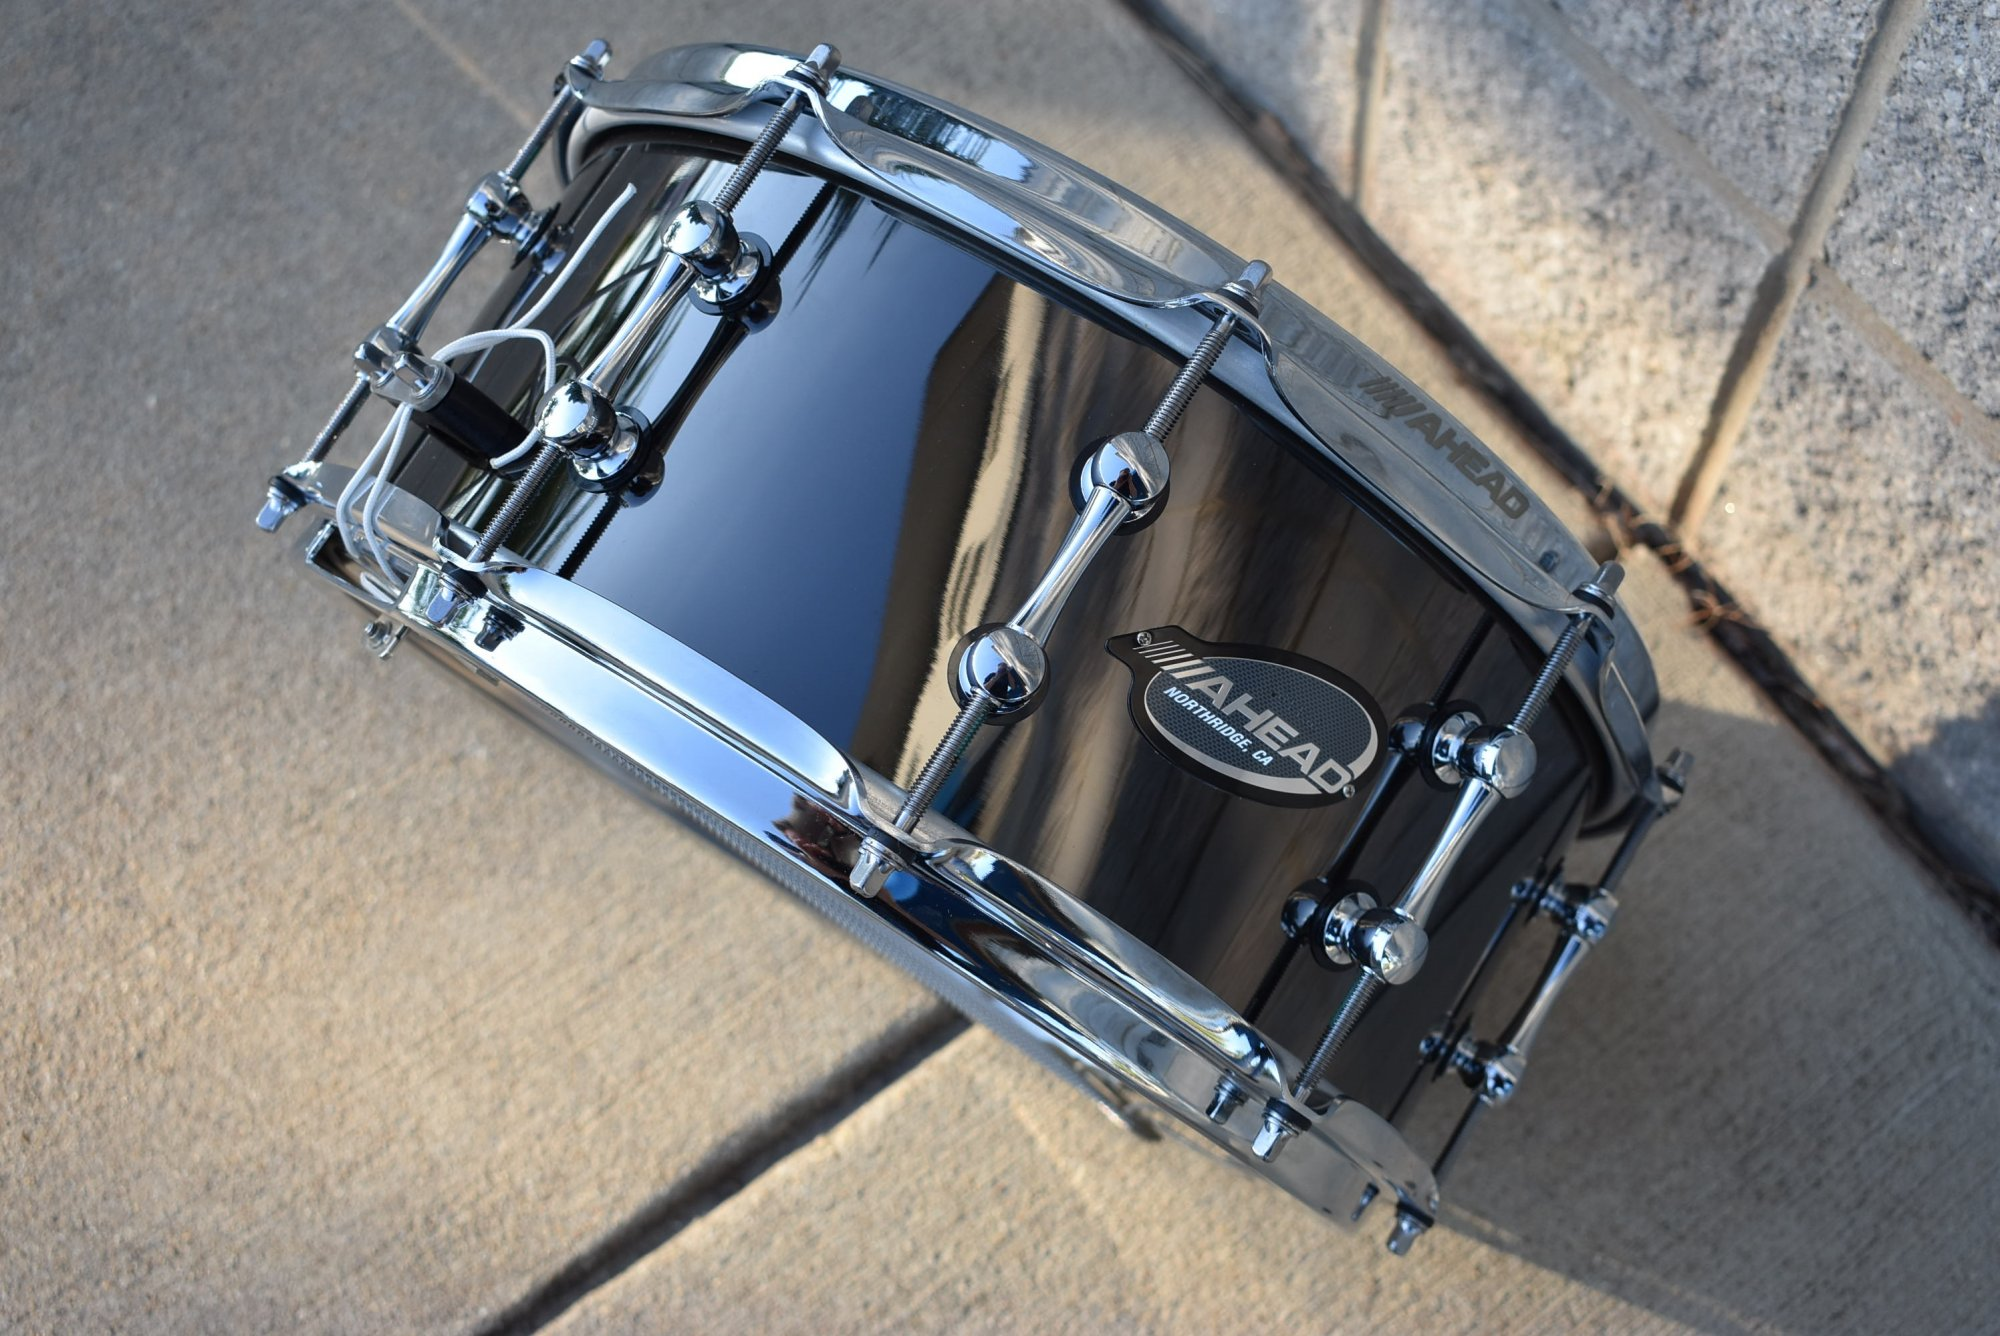 Used AHEAD AS614 Snare Drum